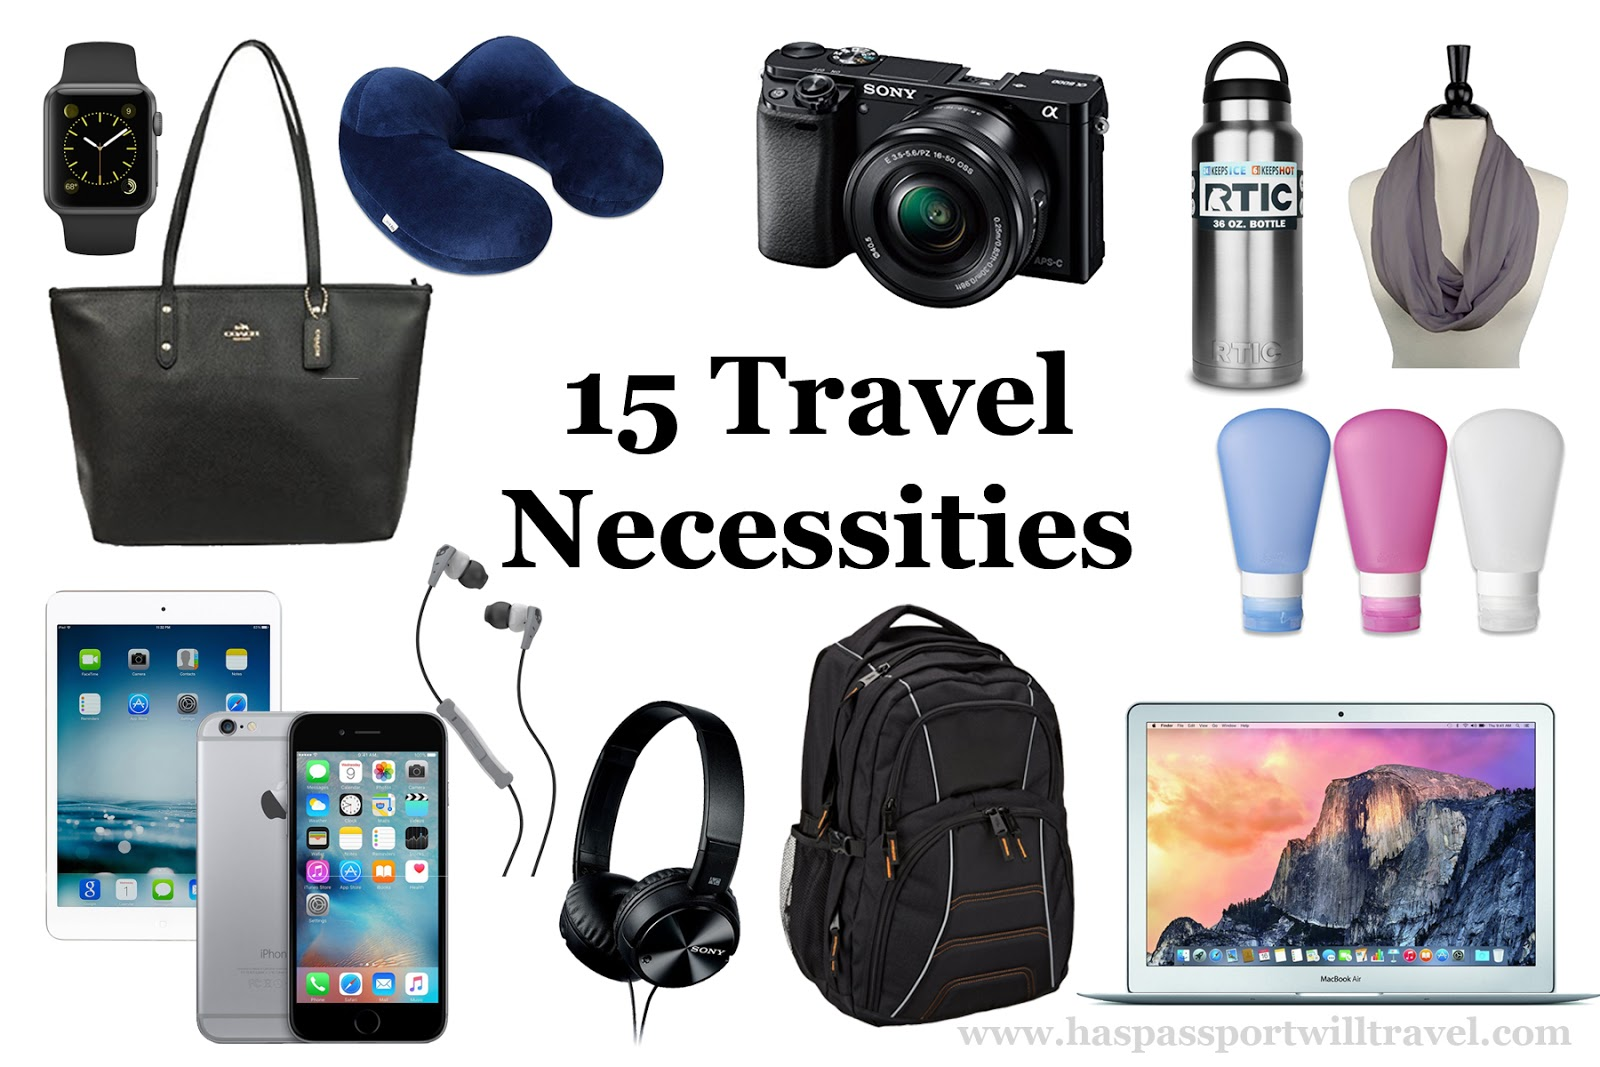 My Travel Necessities